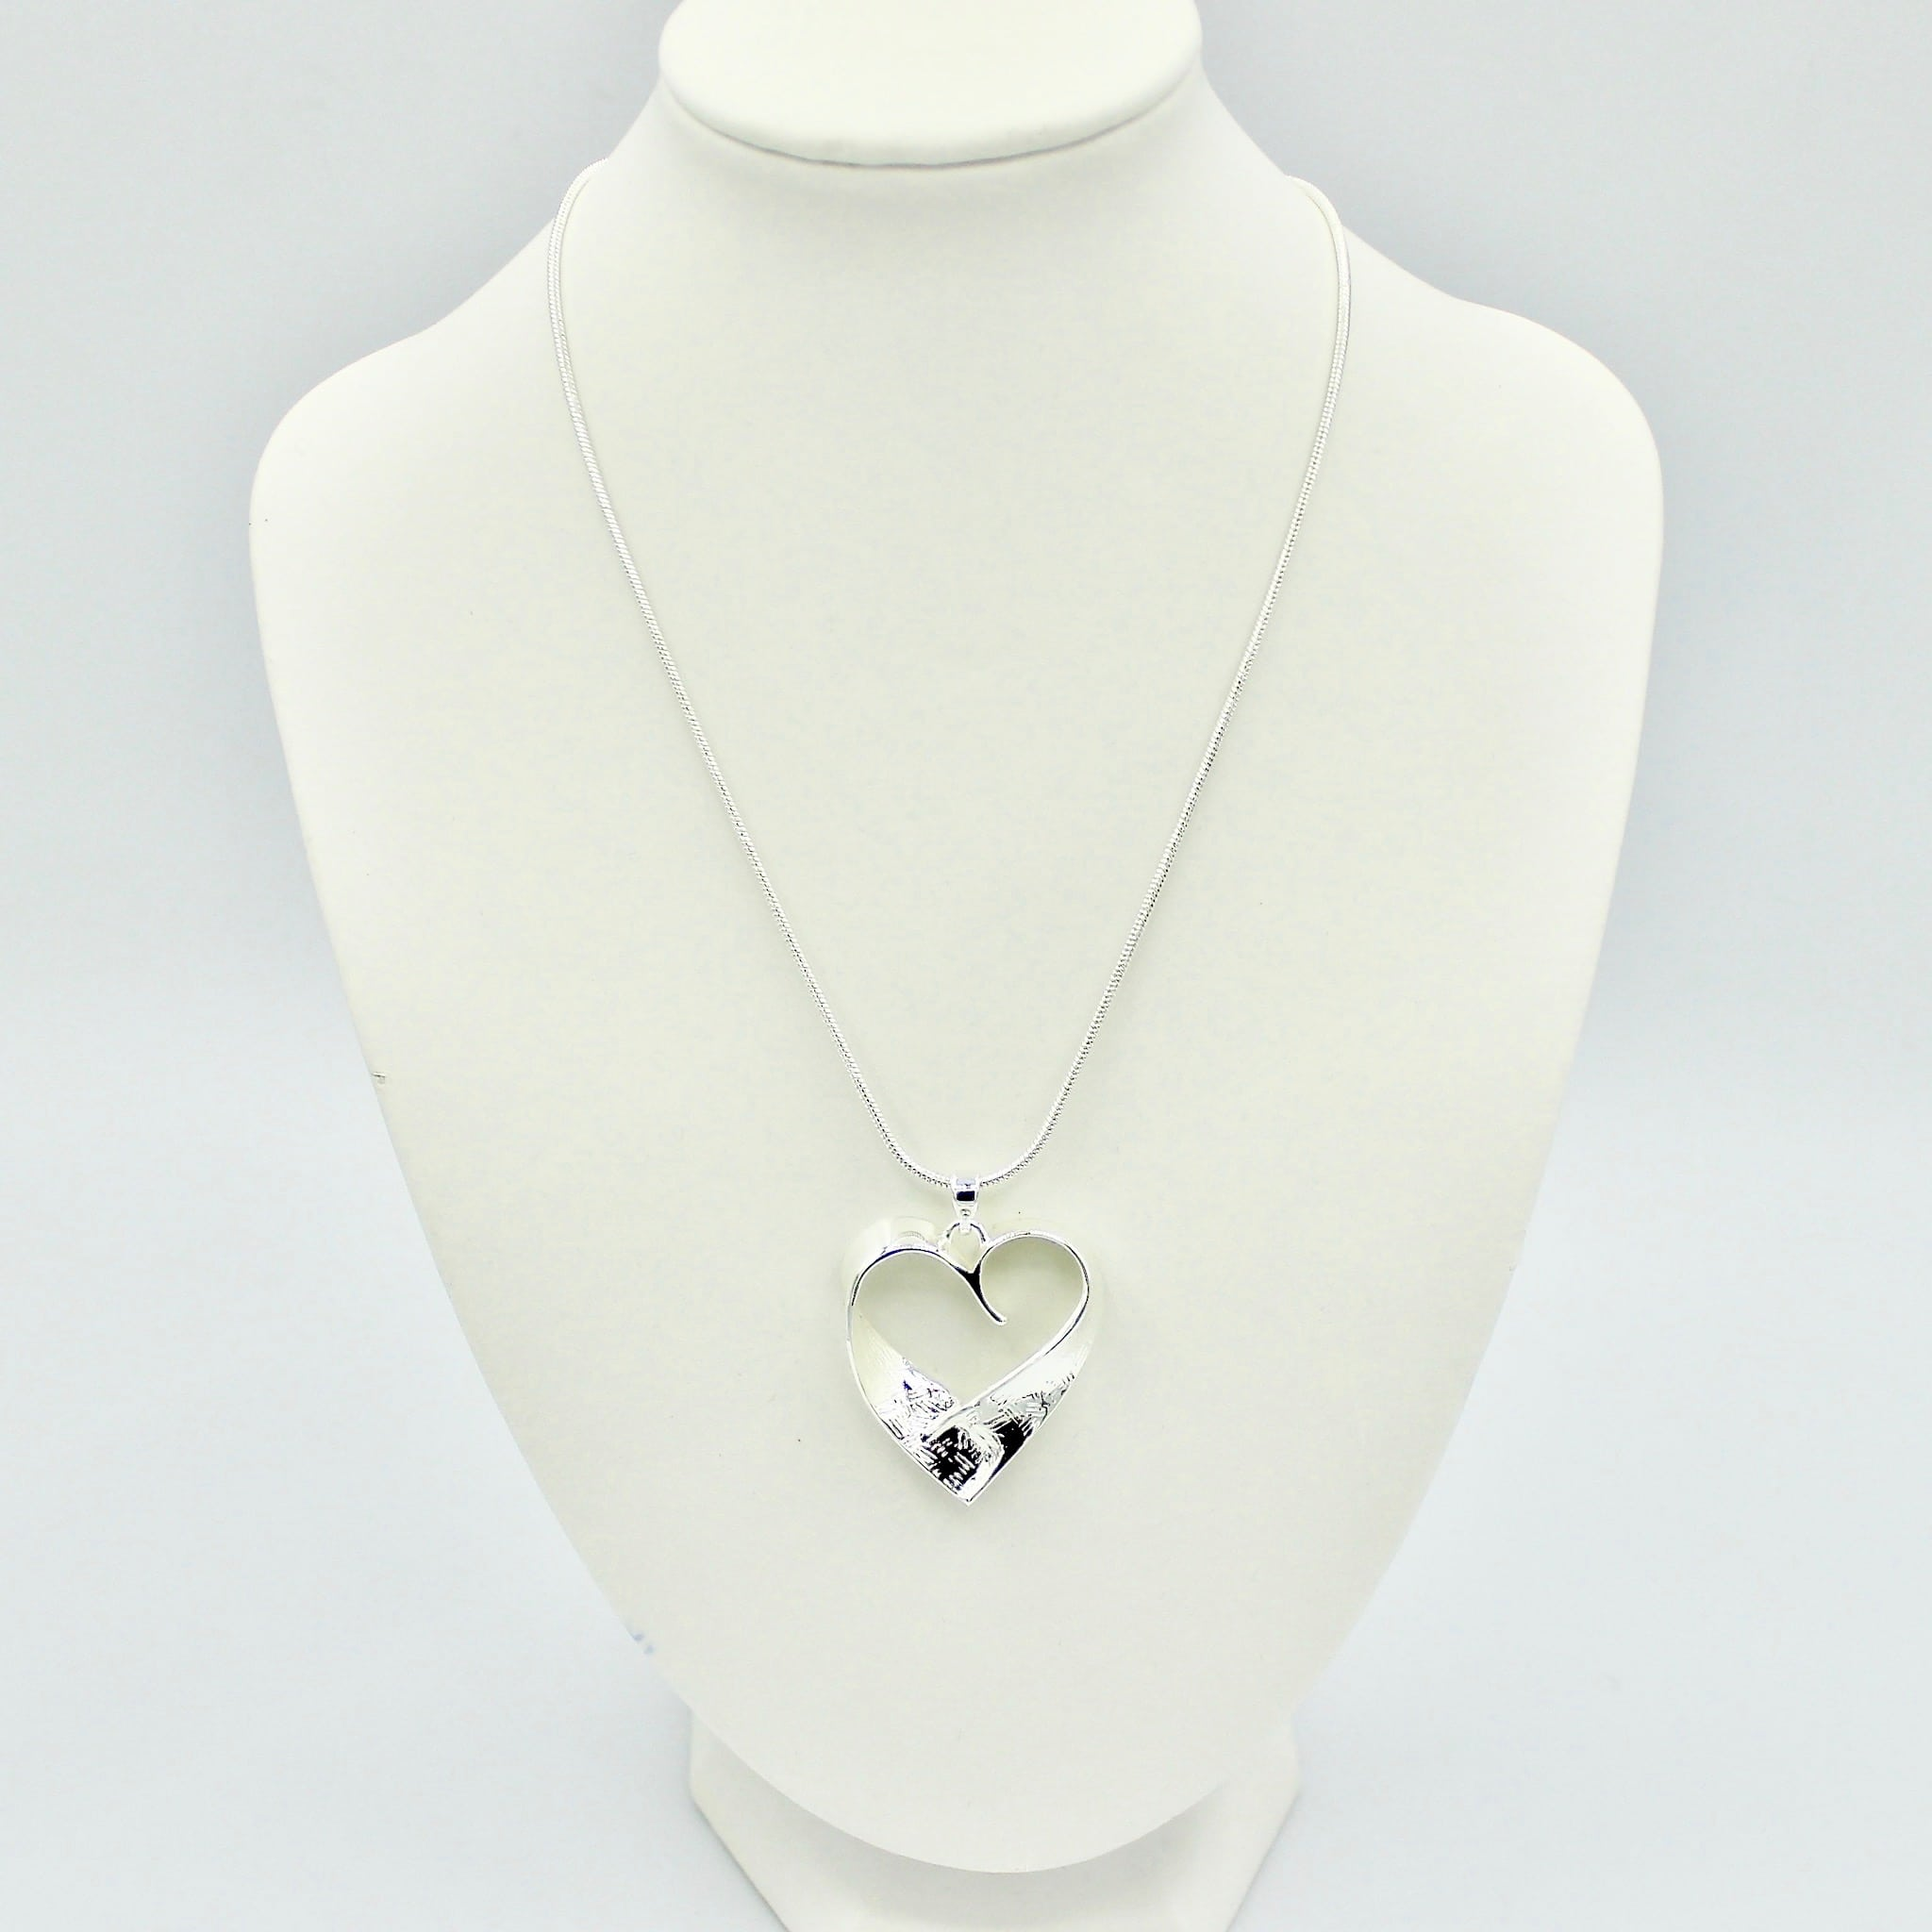 Stylish Solid Heart Necklace